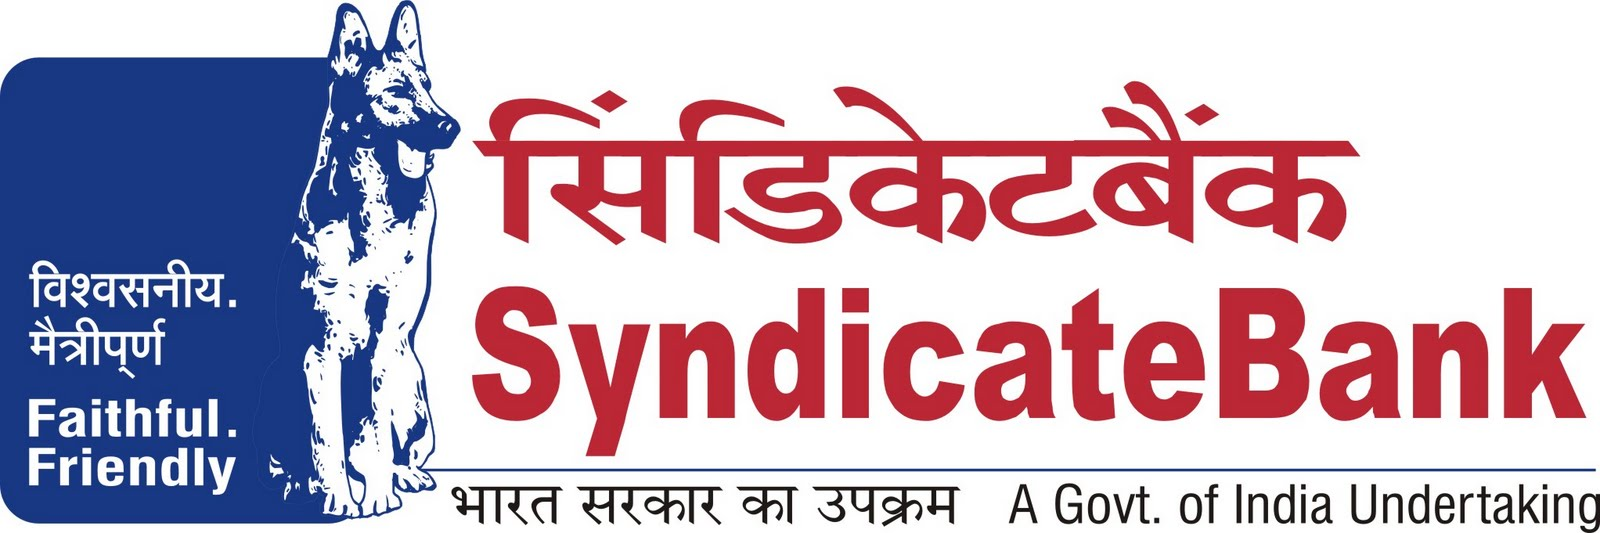 Syndicate Bank Logo Old